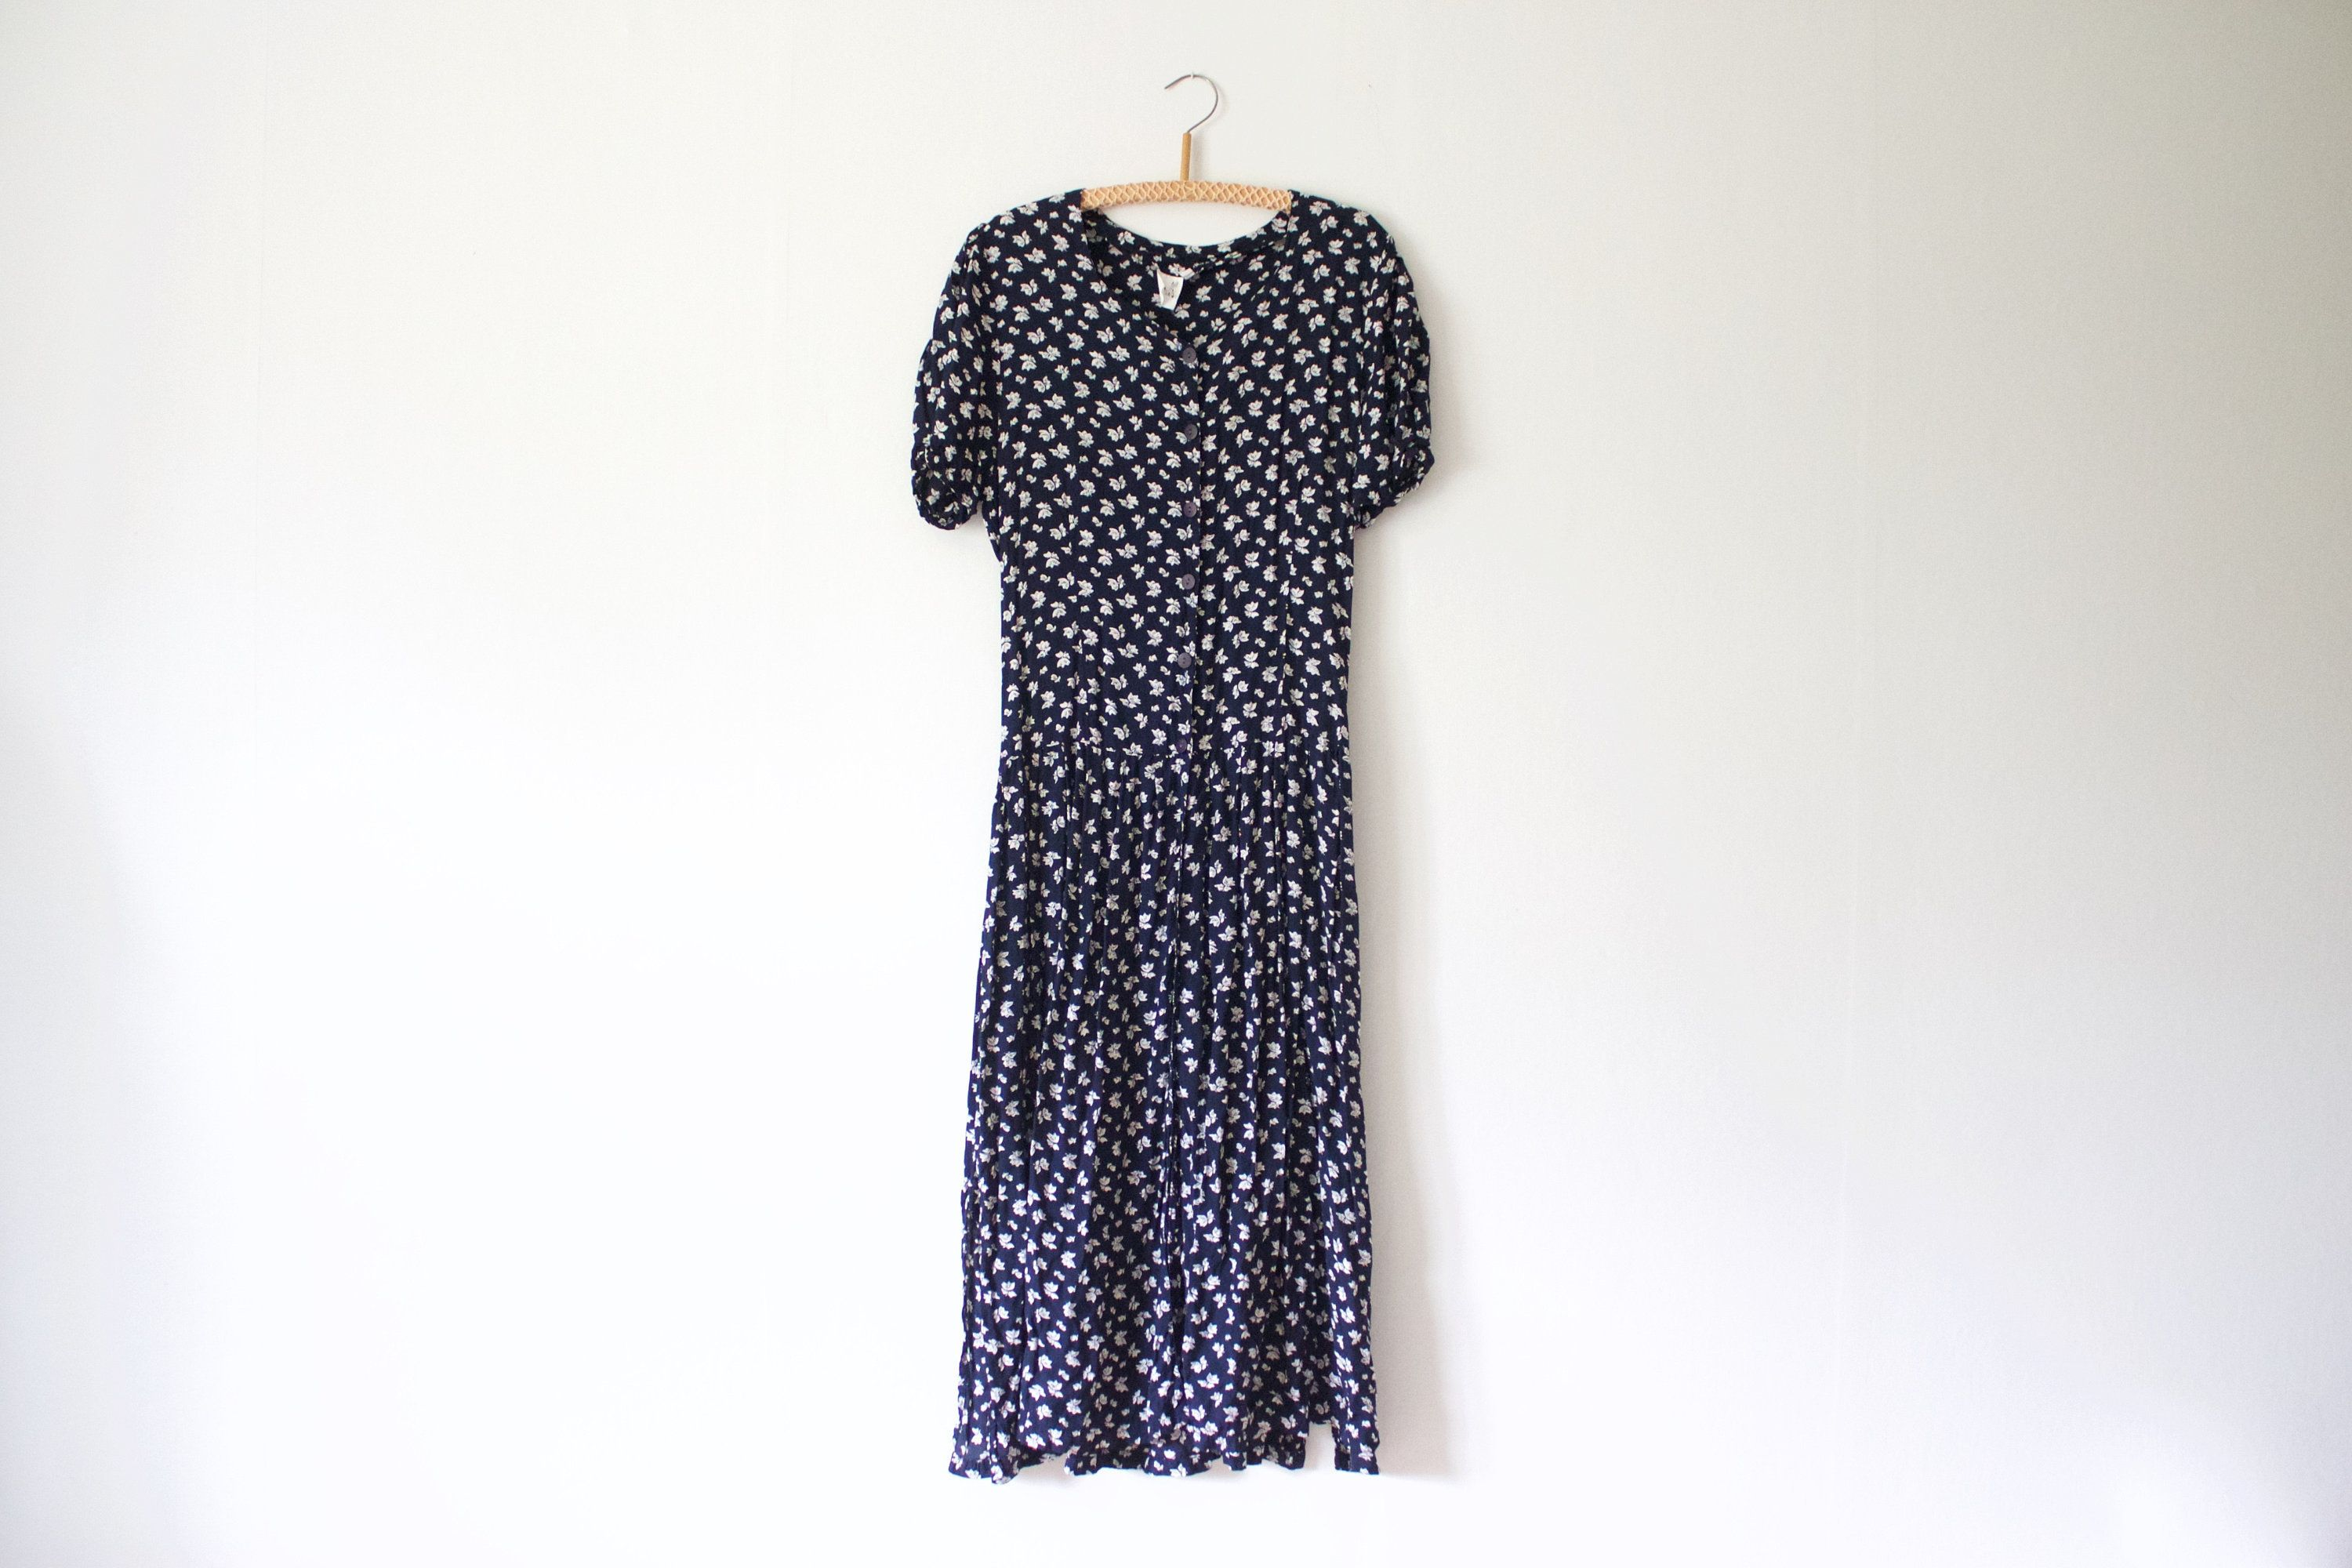 Vintage Women's Navy Blue White Floral Midi Button Up Dress // Short Sleeve Summer Button Front Viscose 90s Dress // S Small // 90s Clothing #navyblueshortdress